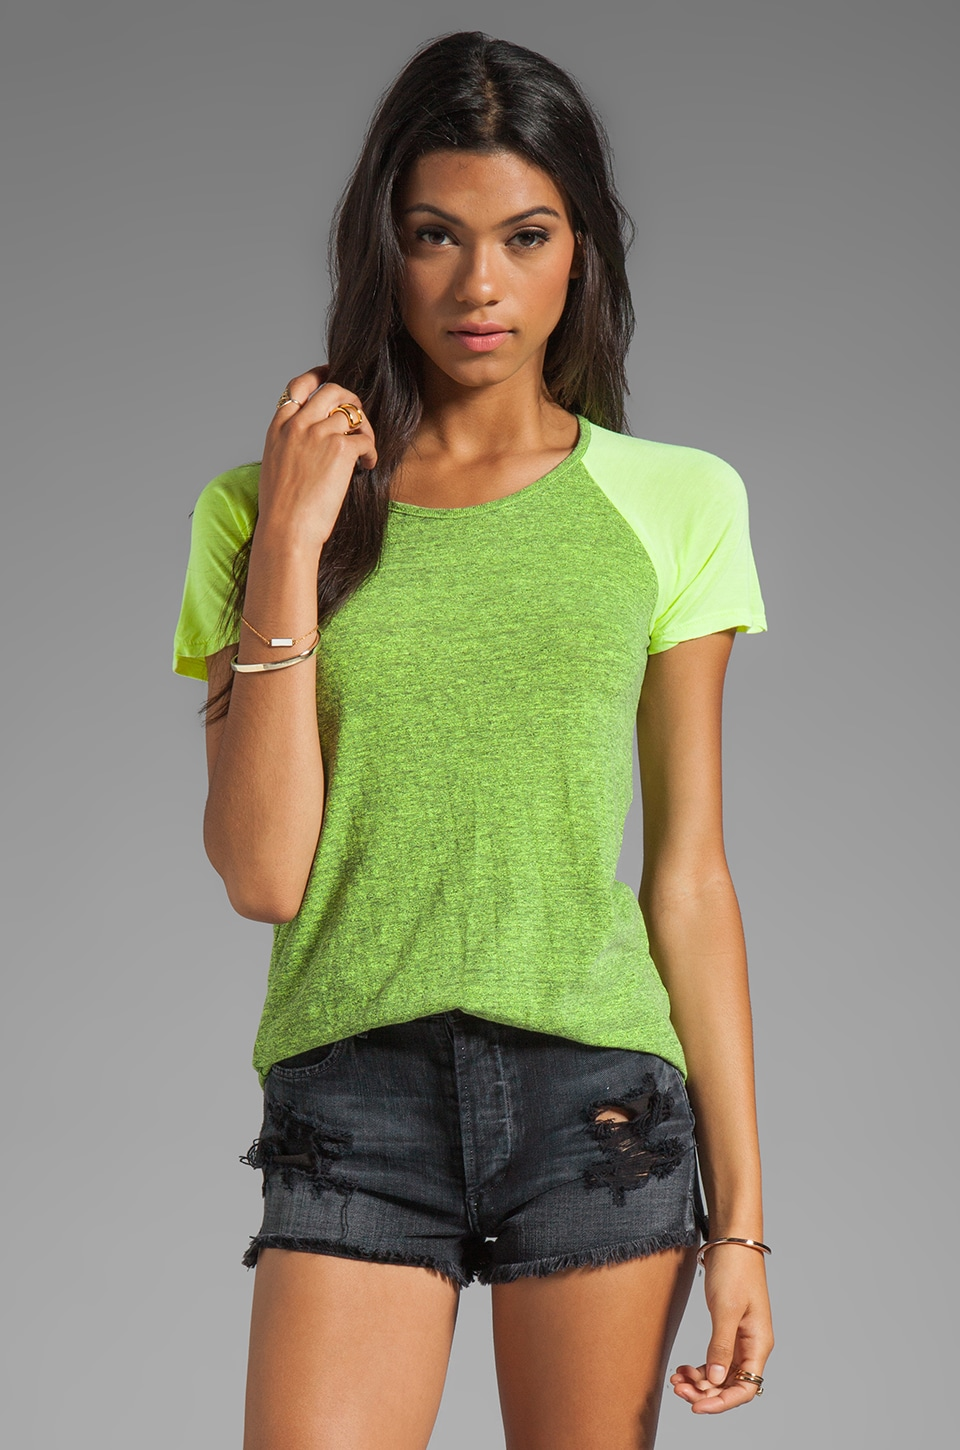 MONROW Granite Novelty Baseball Tee in Neon Citron